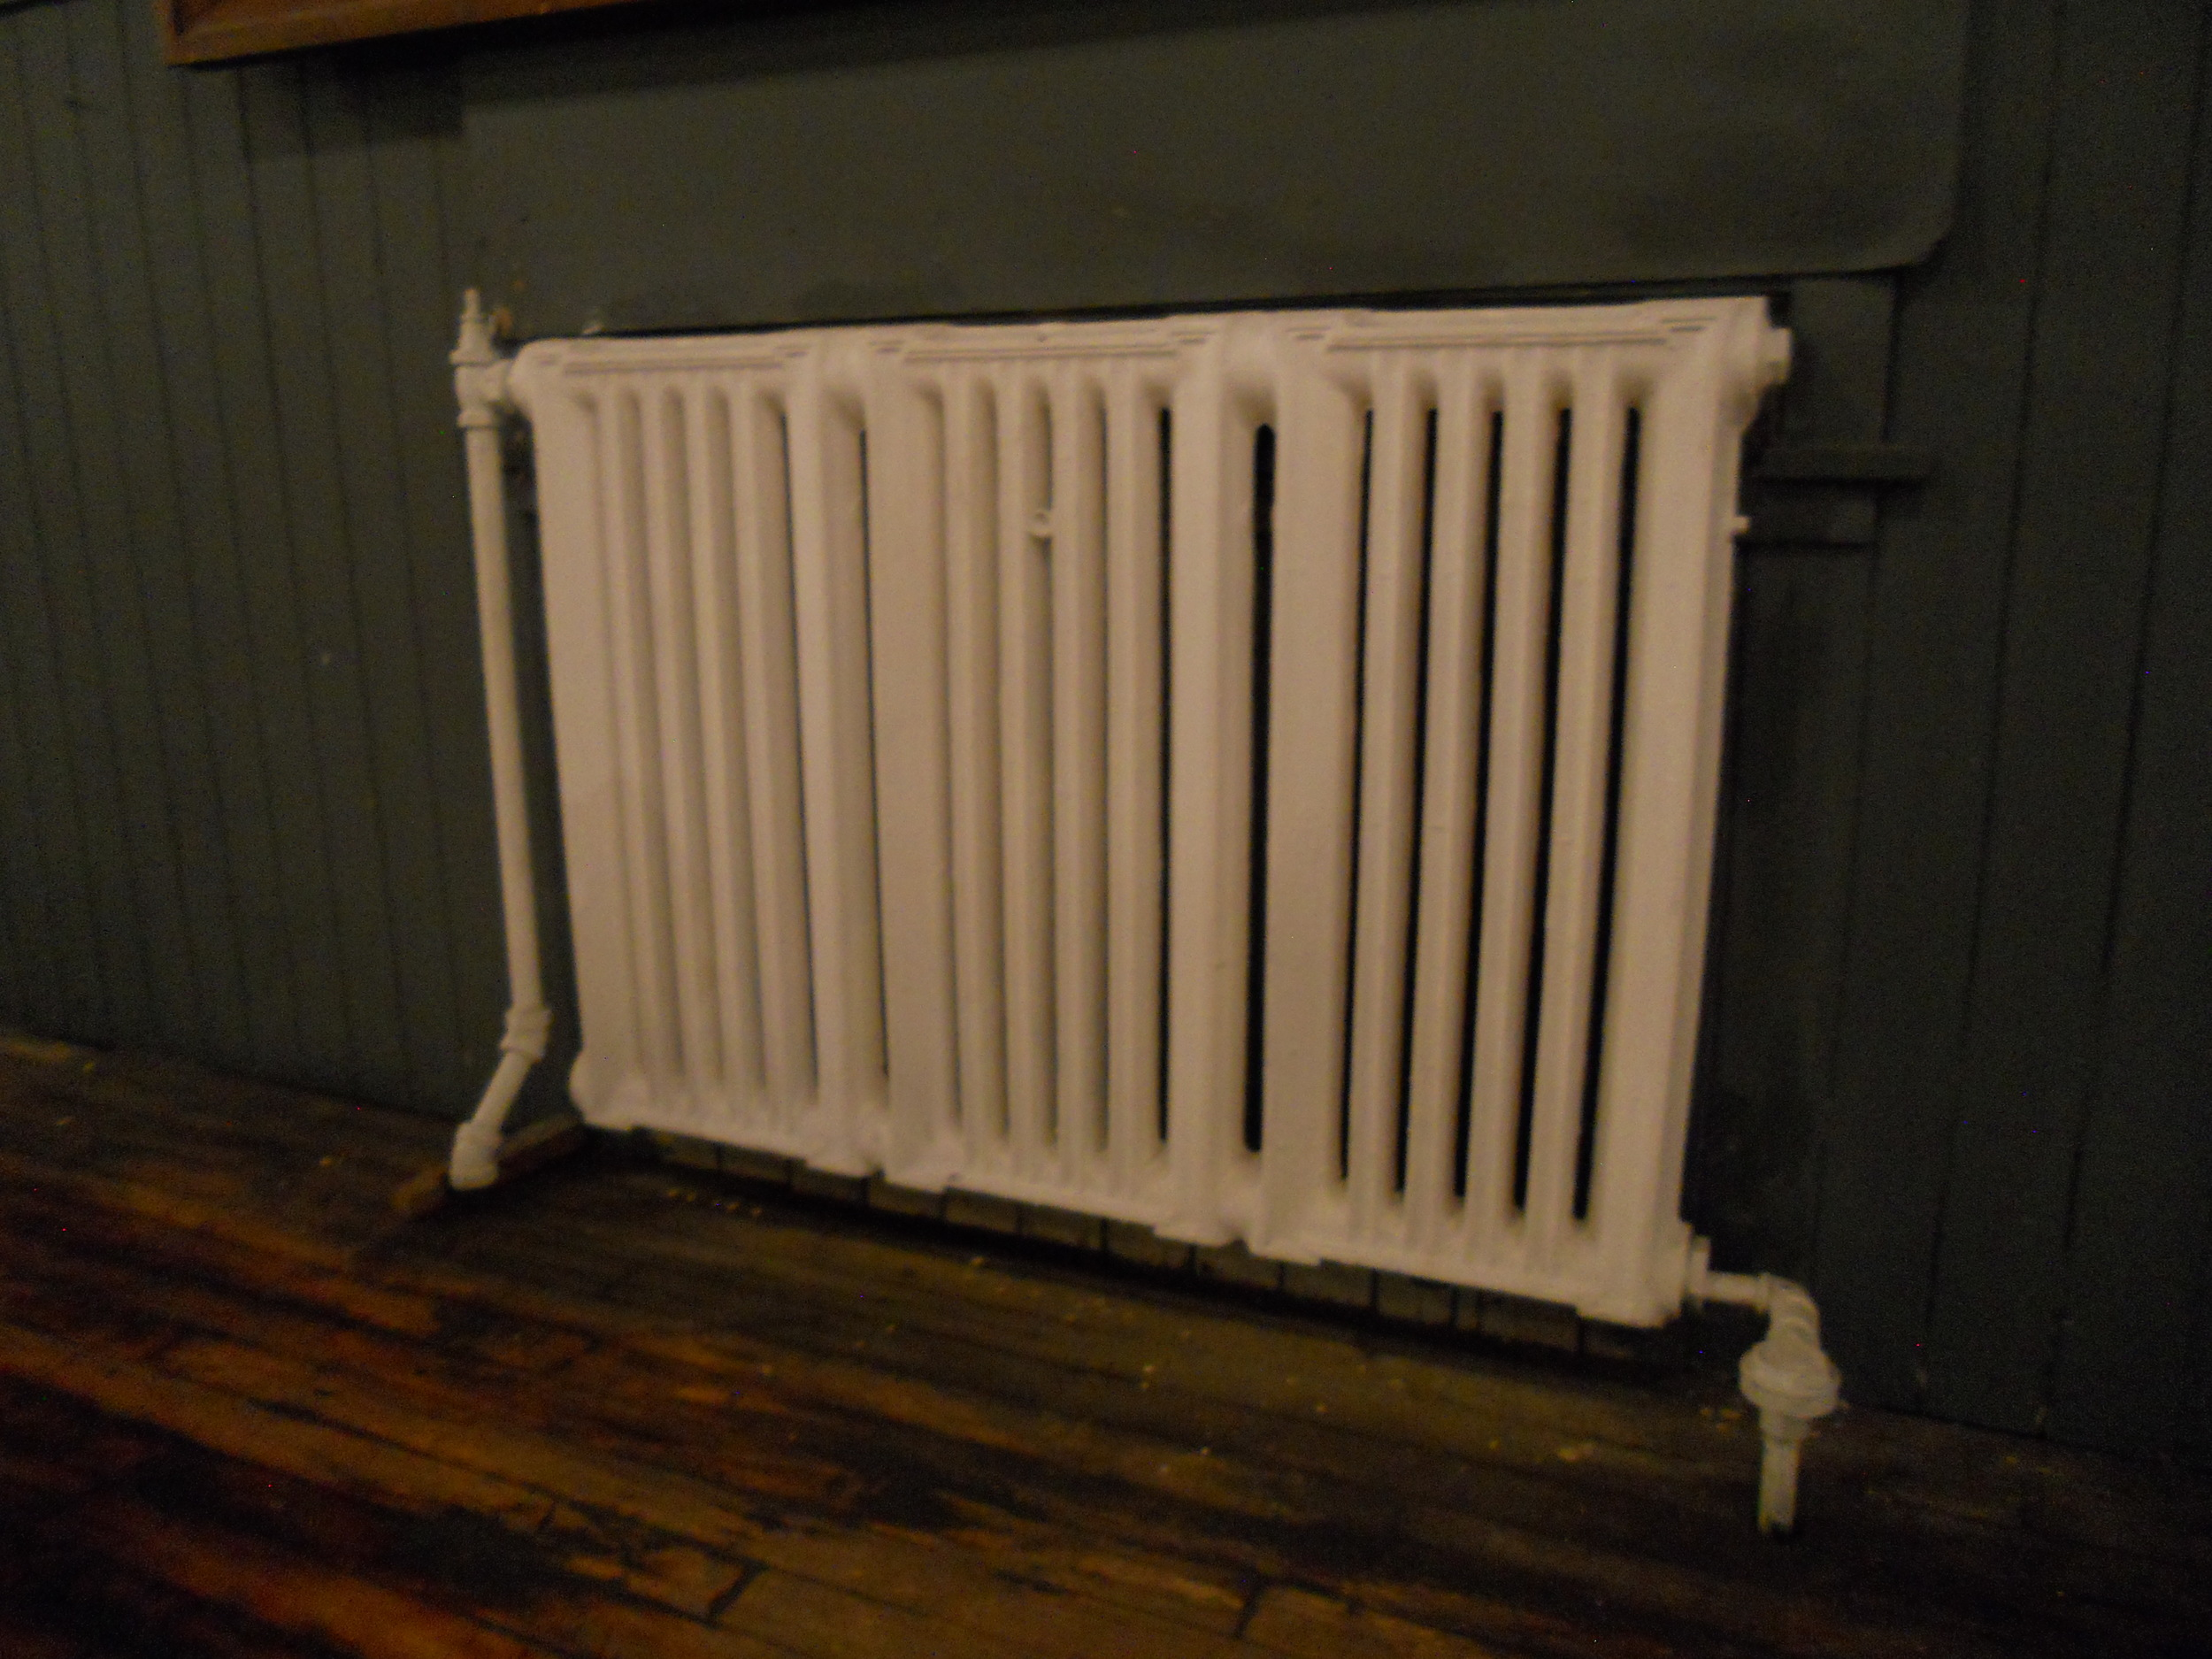 New forced air heating and cooling will eliminate the old radiators.